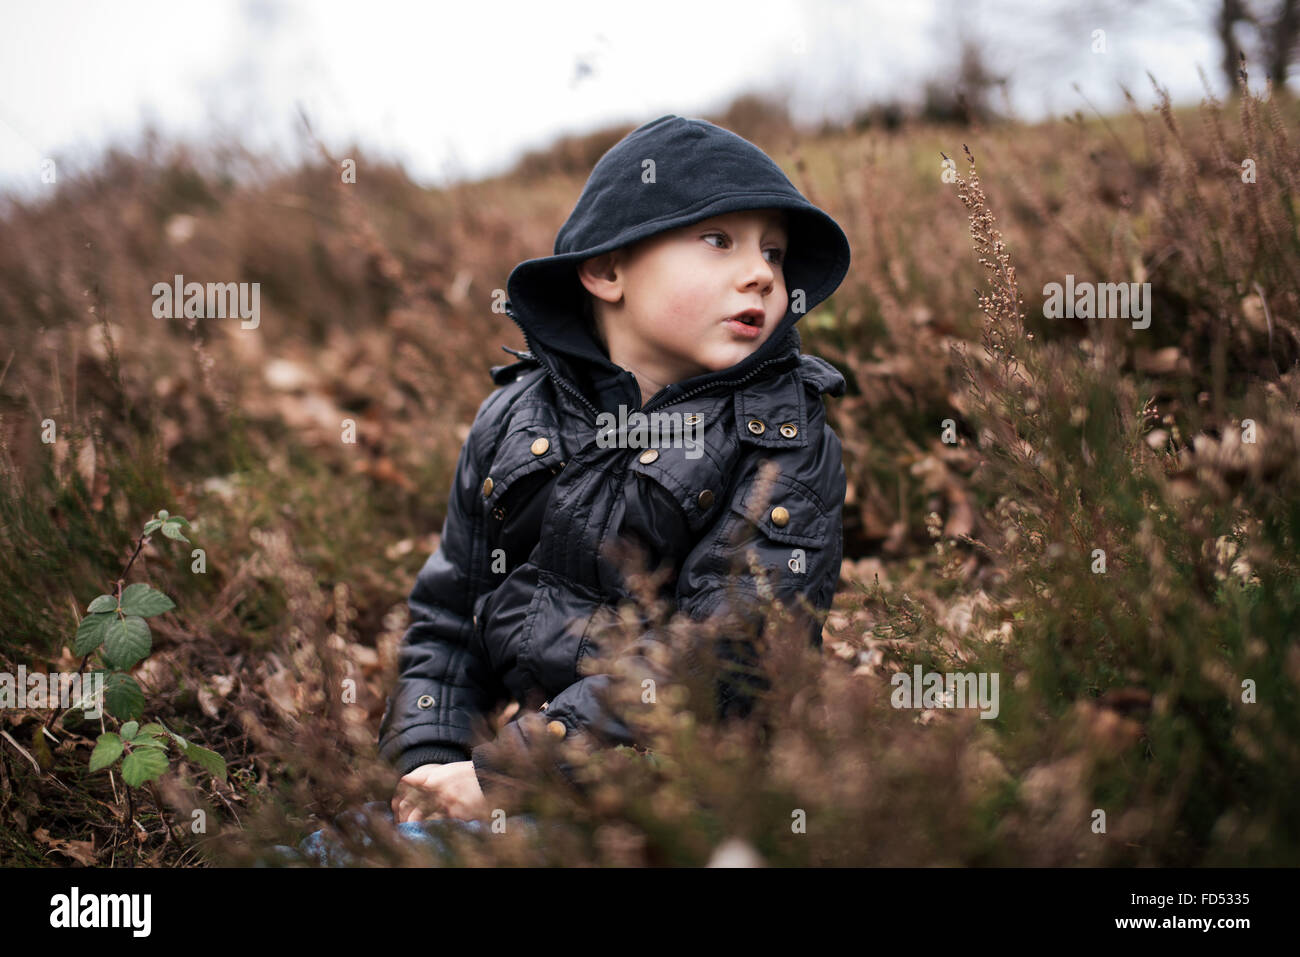 Little boy wearing hood sitting in nature - Stock Image